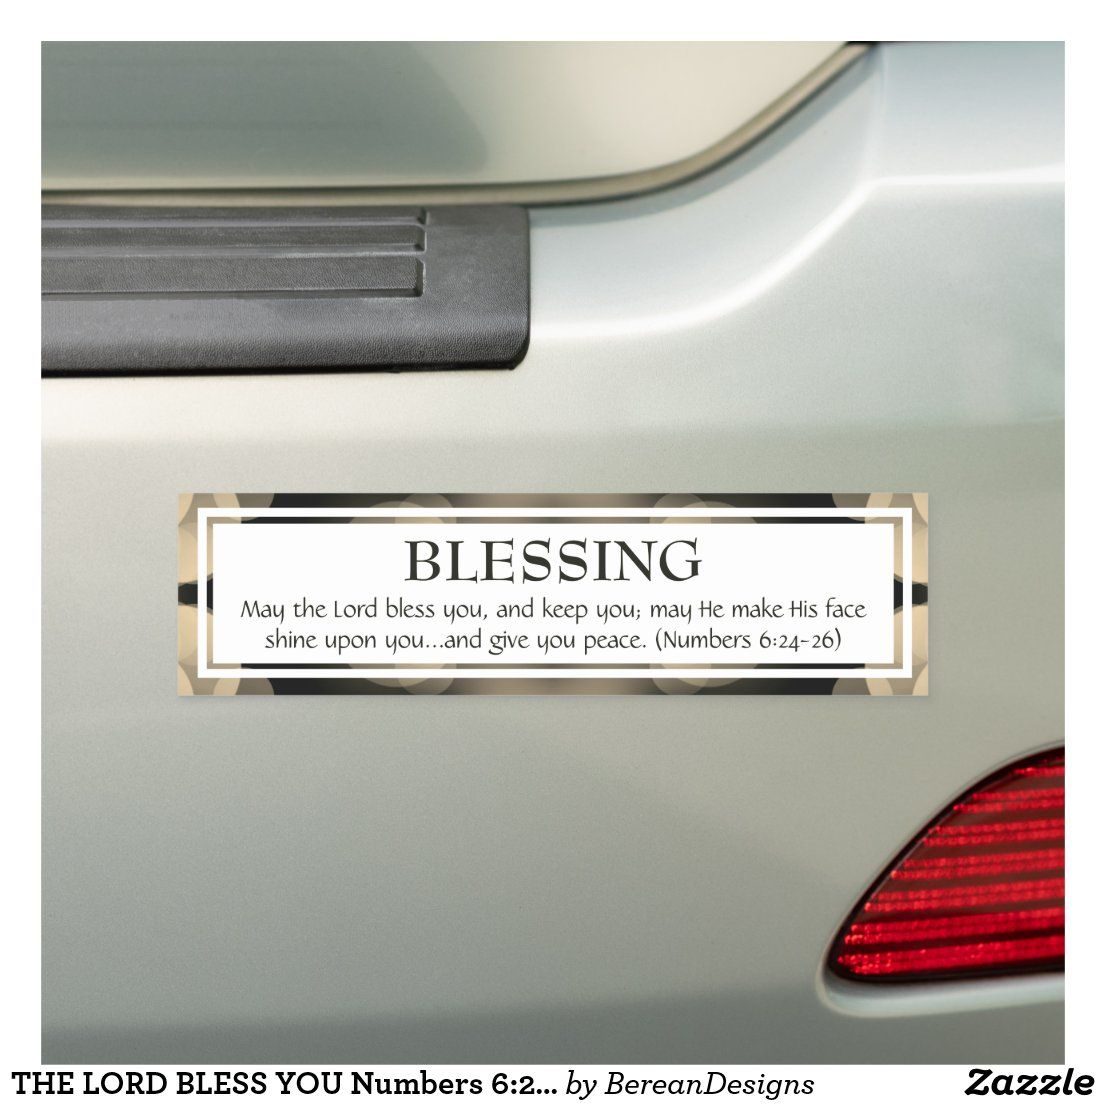 The Lord Bless You Numbers 6 24 26 Scripture Car Magnet Zazzle Com Scripture Car Magnets Blessed [ 1106 x 1106 Pixel ]